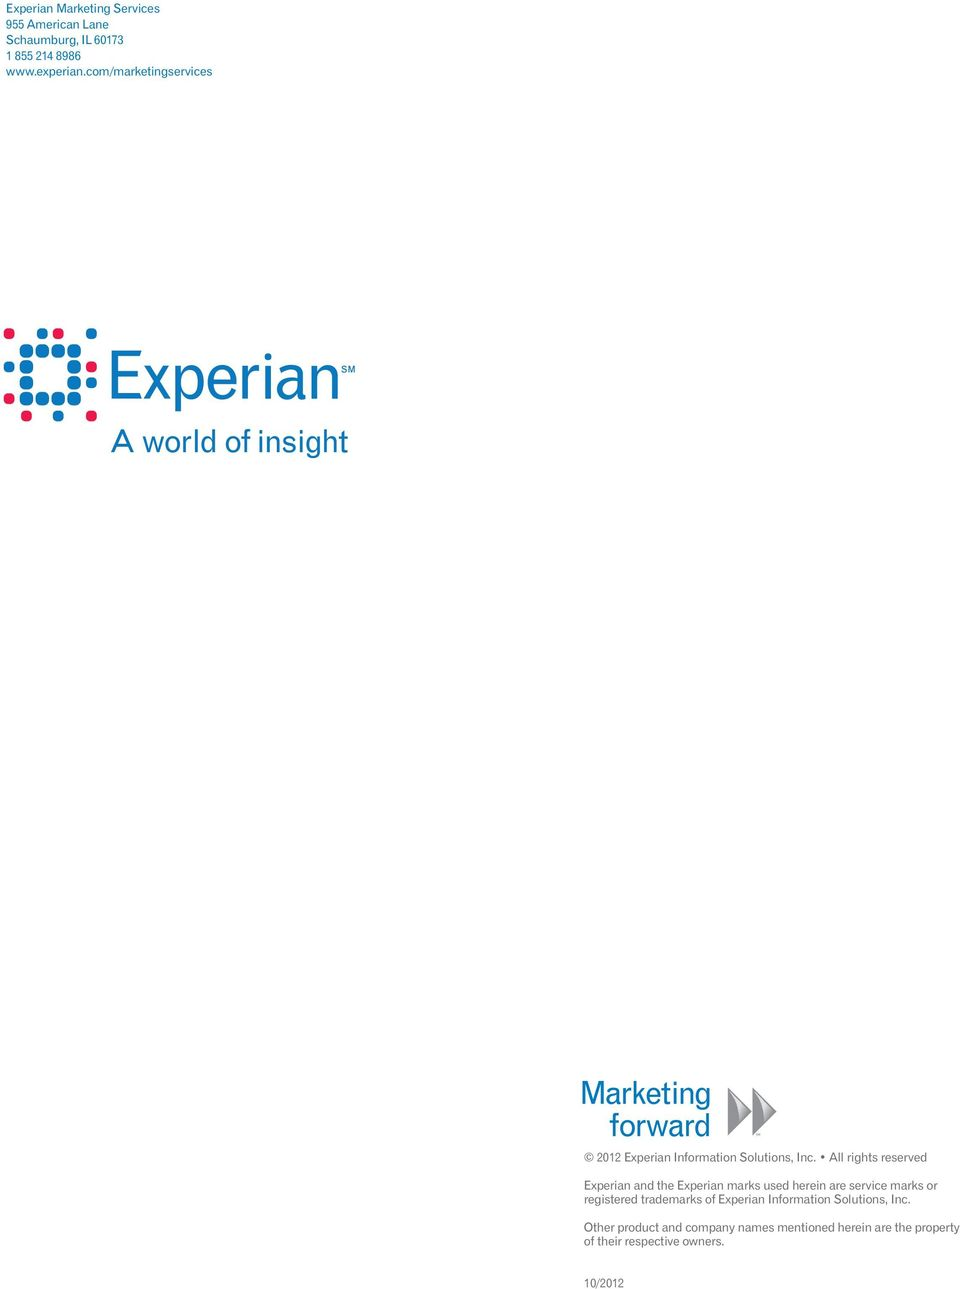 All rights reserved Experian and the Experian marks used herein are service marks or registered